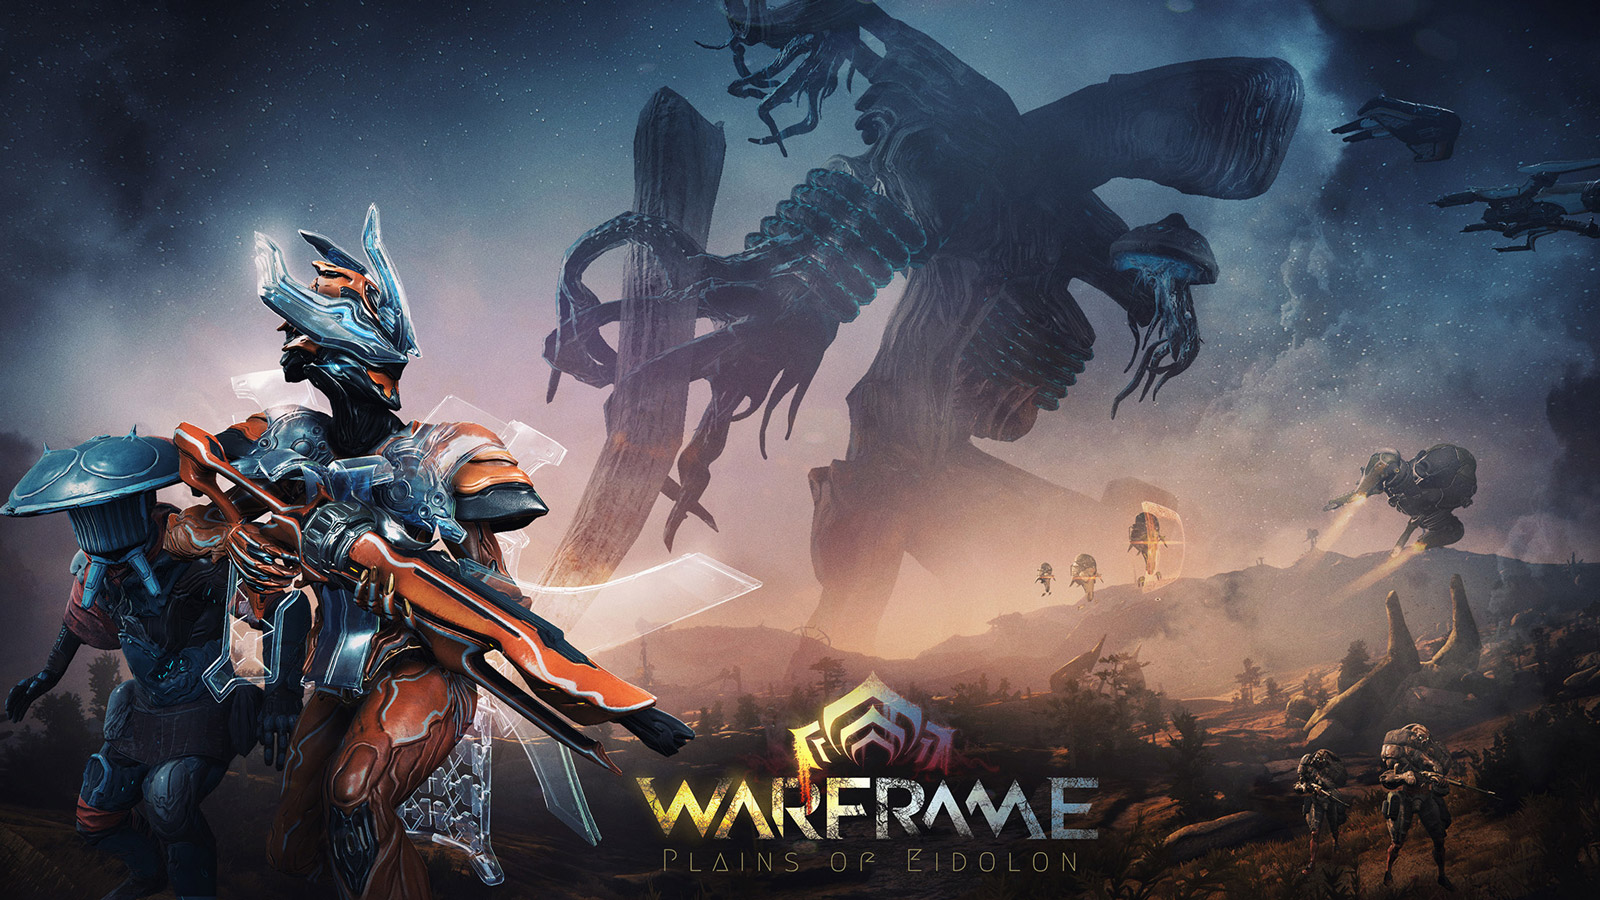 Warframe Wallpaper in 1600x900